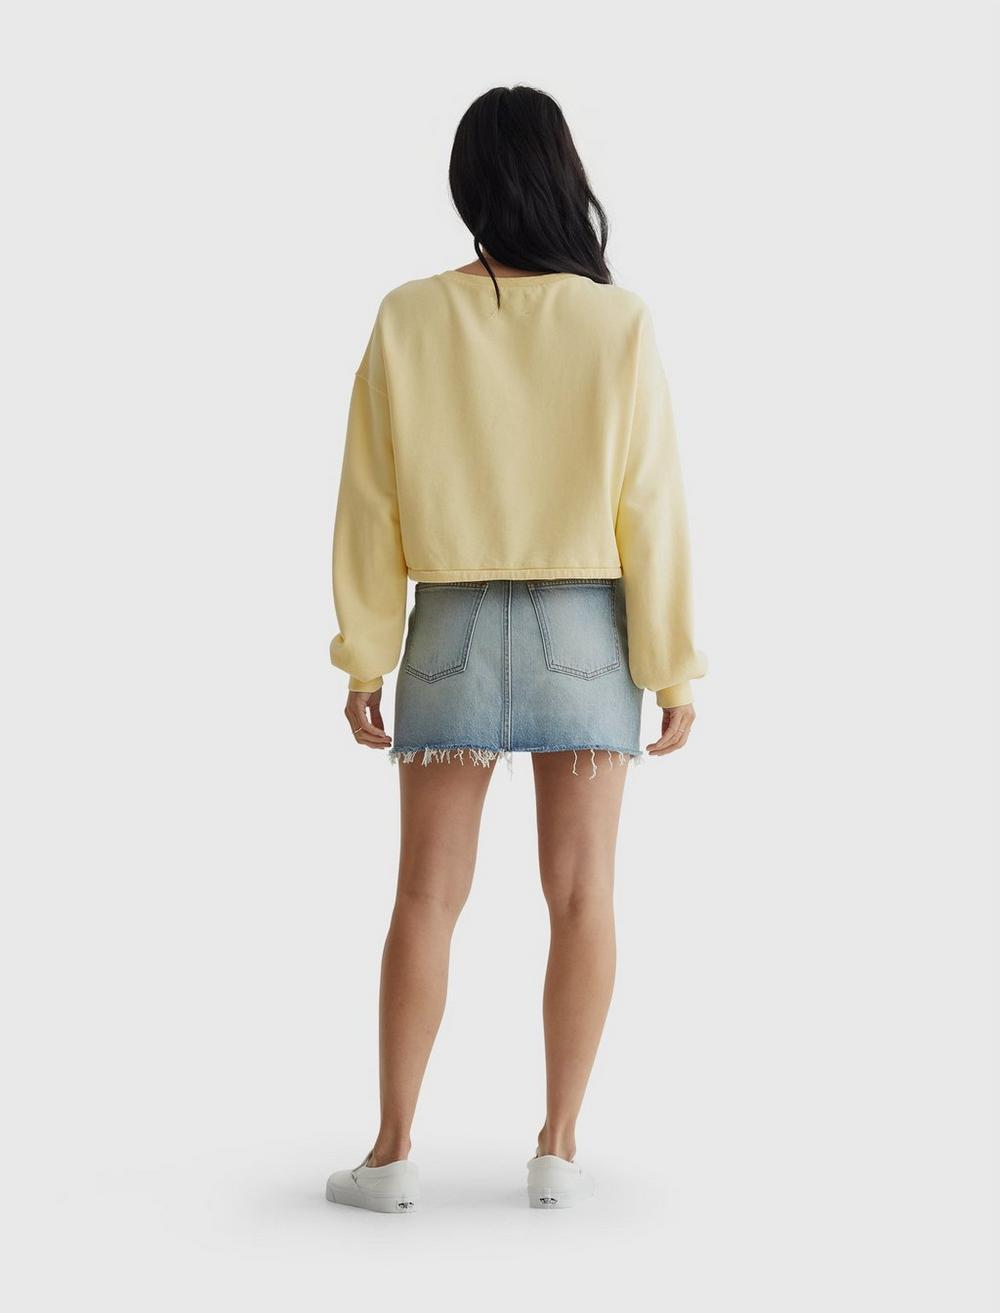 COOL FOR SUMMER CROPPED CREW, image 5